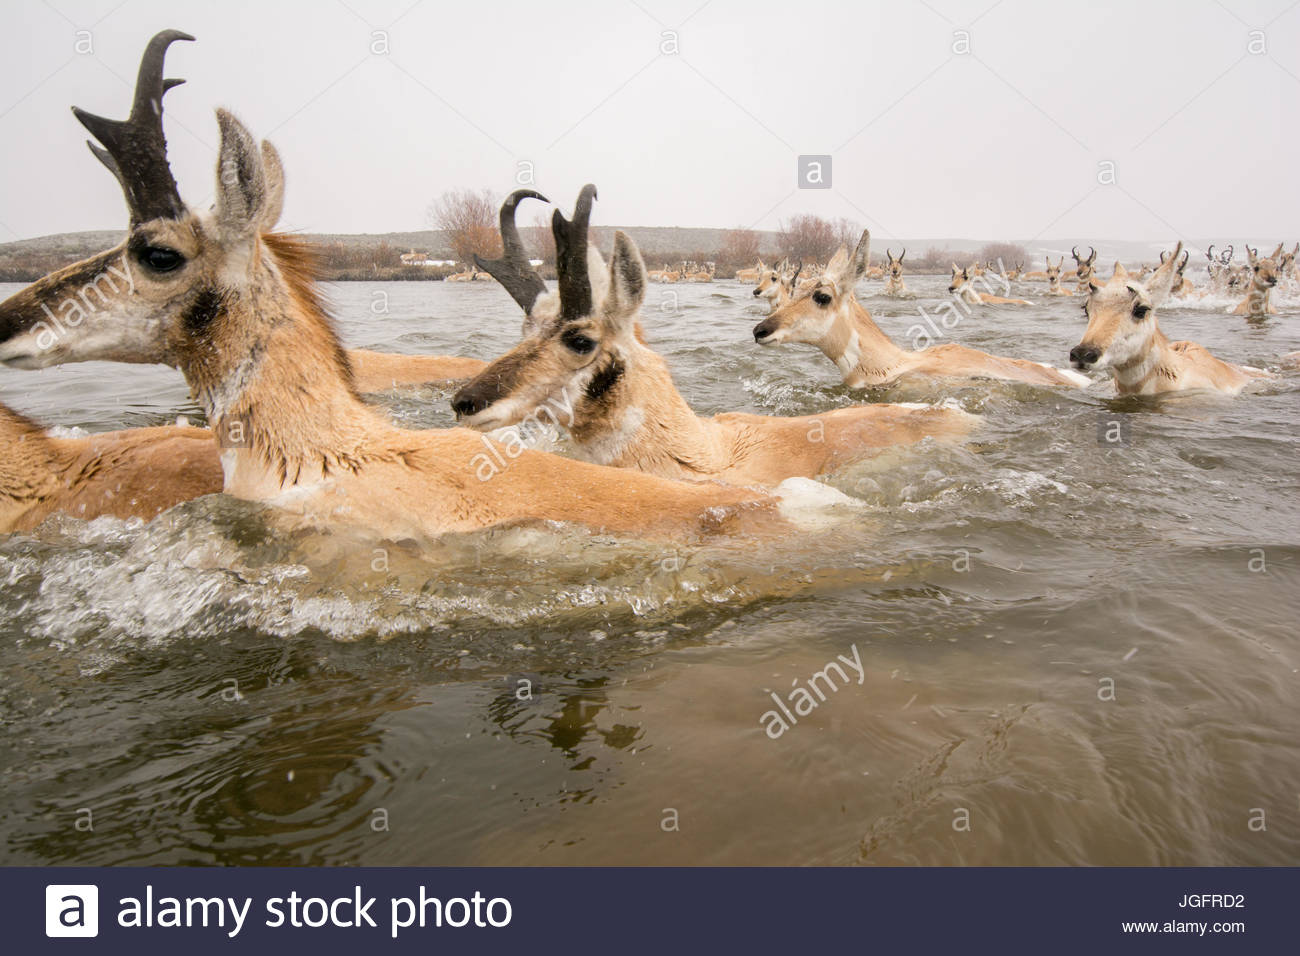 Pronghorn crossing a river during migration in Wyoming. - Stock Image